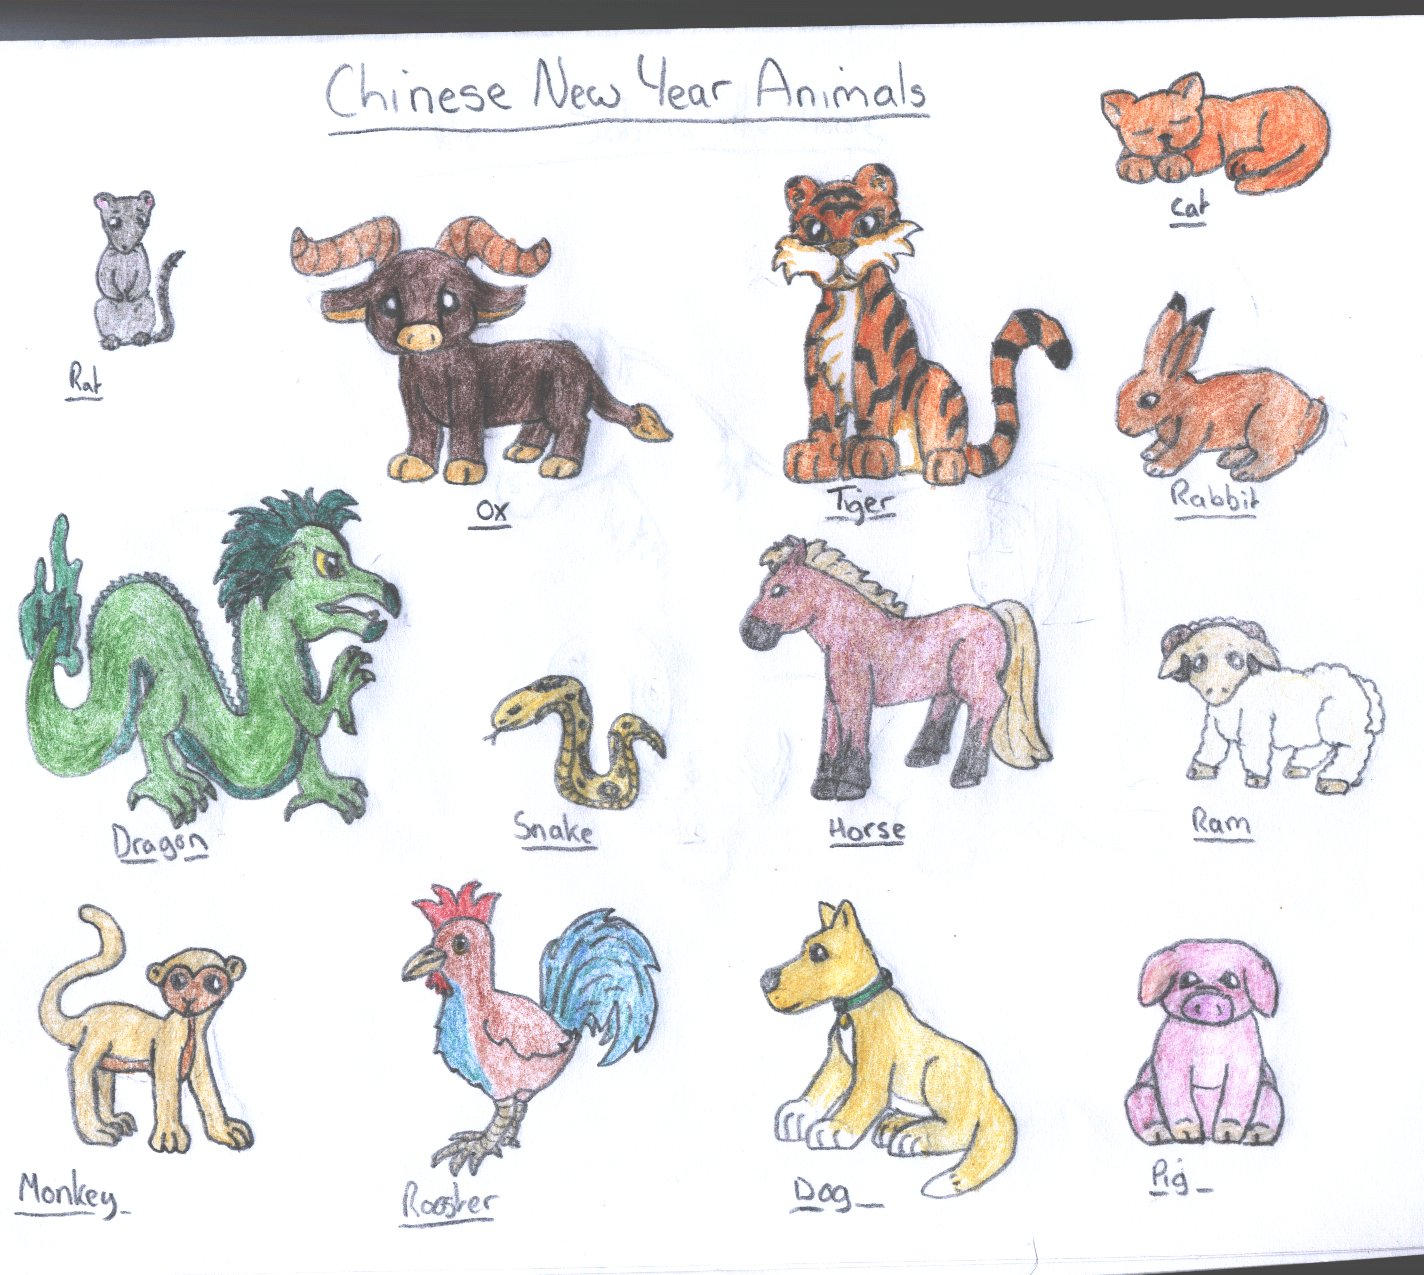 Chinese New Year Animals by SweetlilAngel on DeviantArt